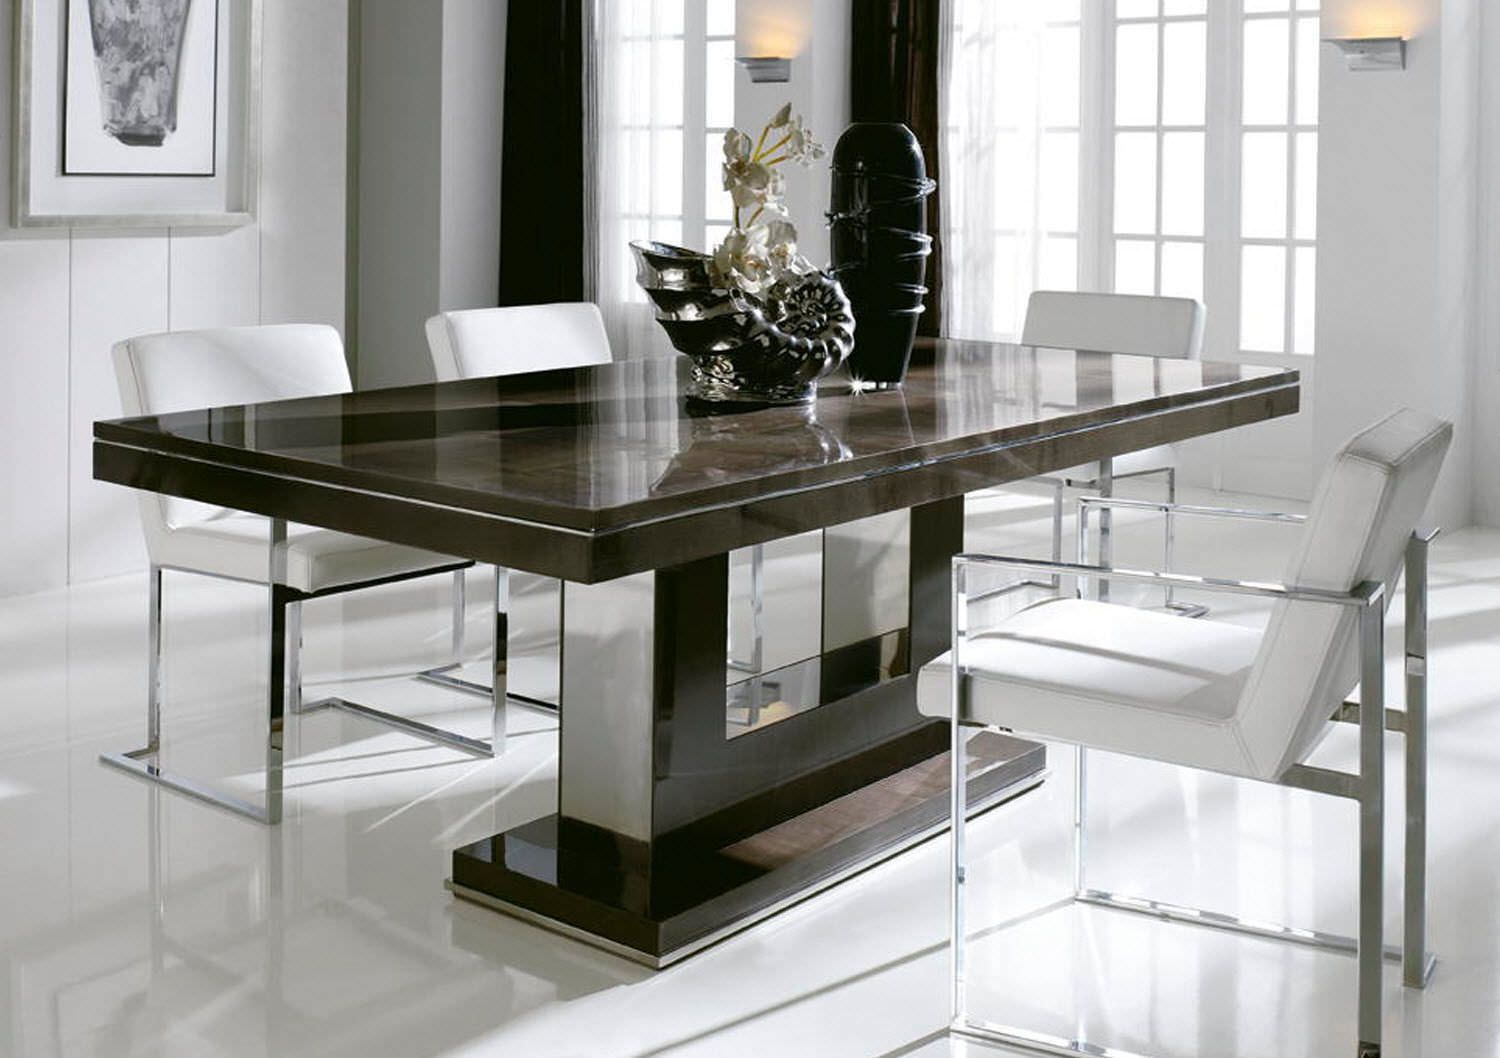 24 Affordable Dining Room Tables Modern Design Ideas In 2020